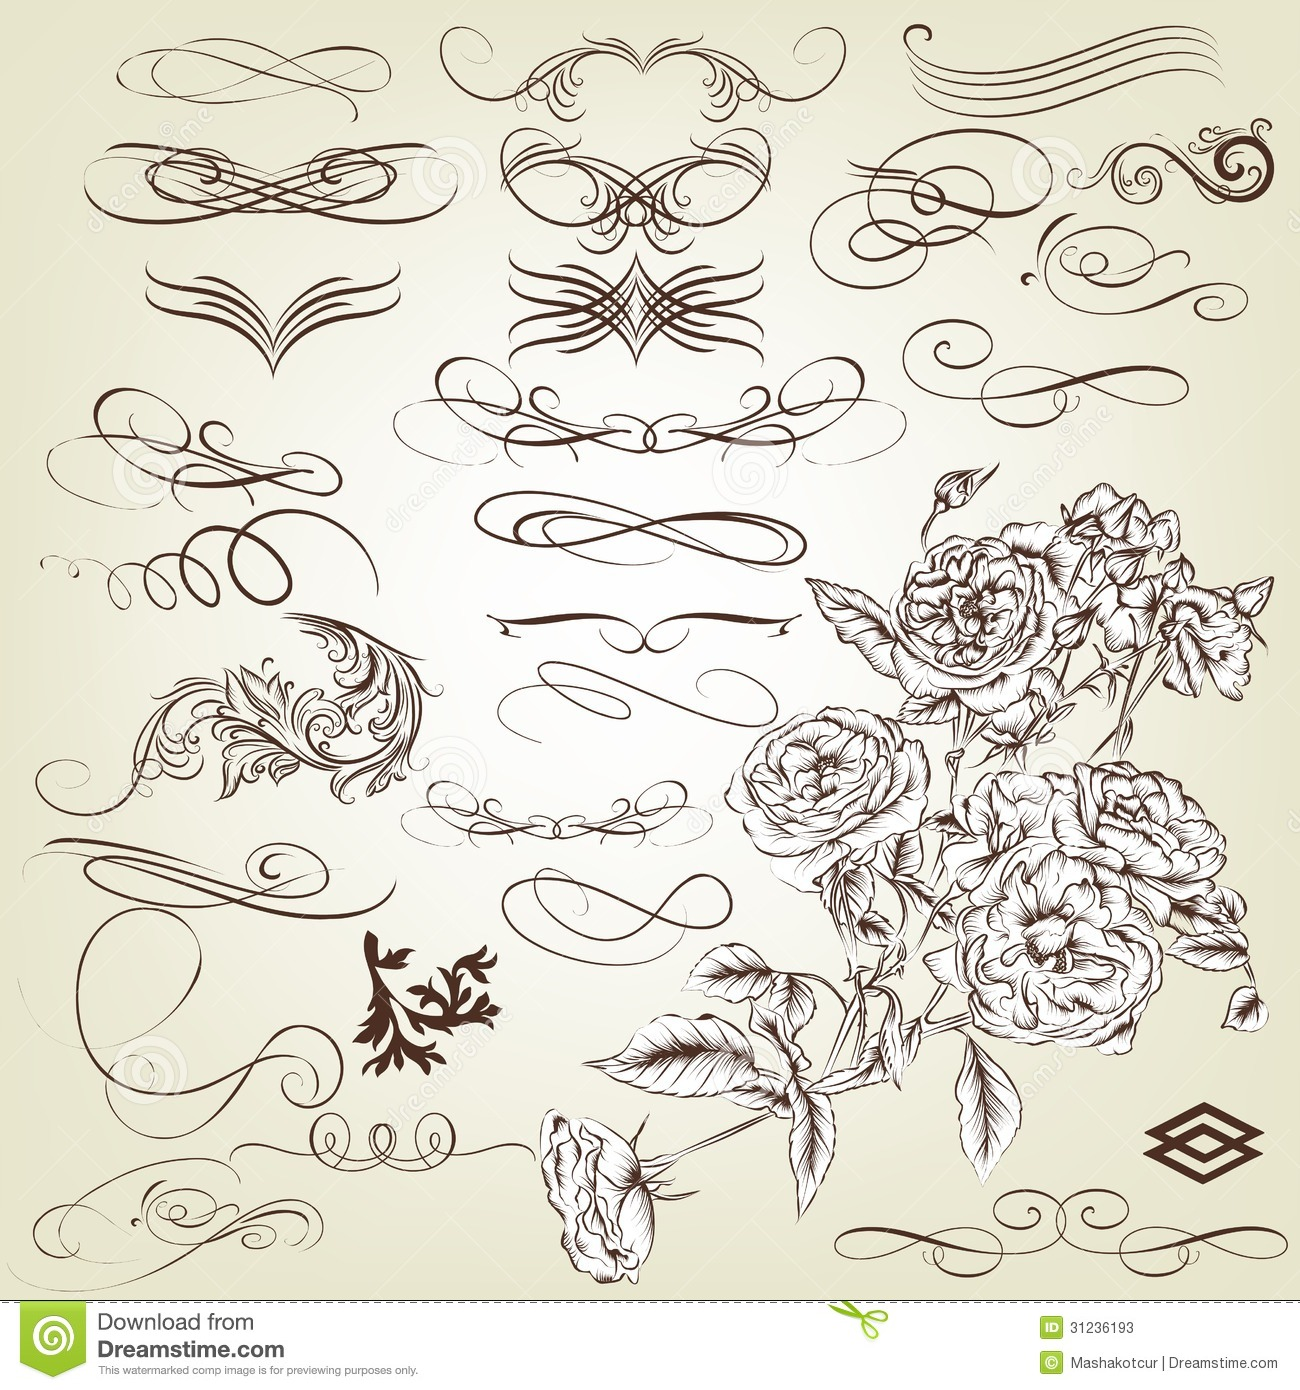 Collection of vintage calligraphic design elements and